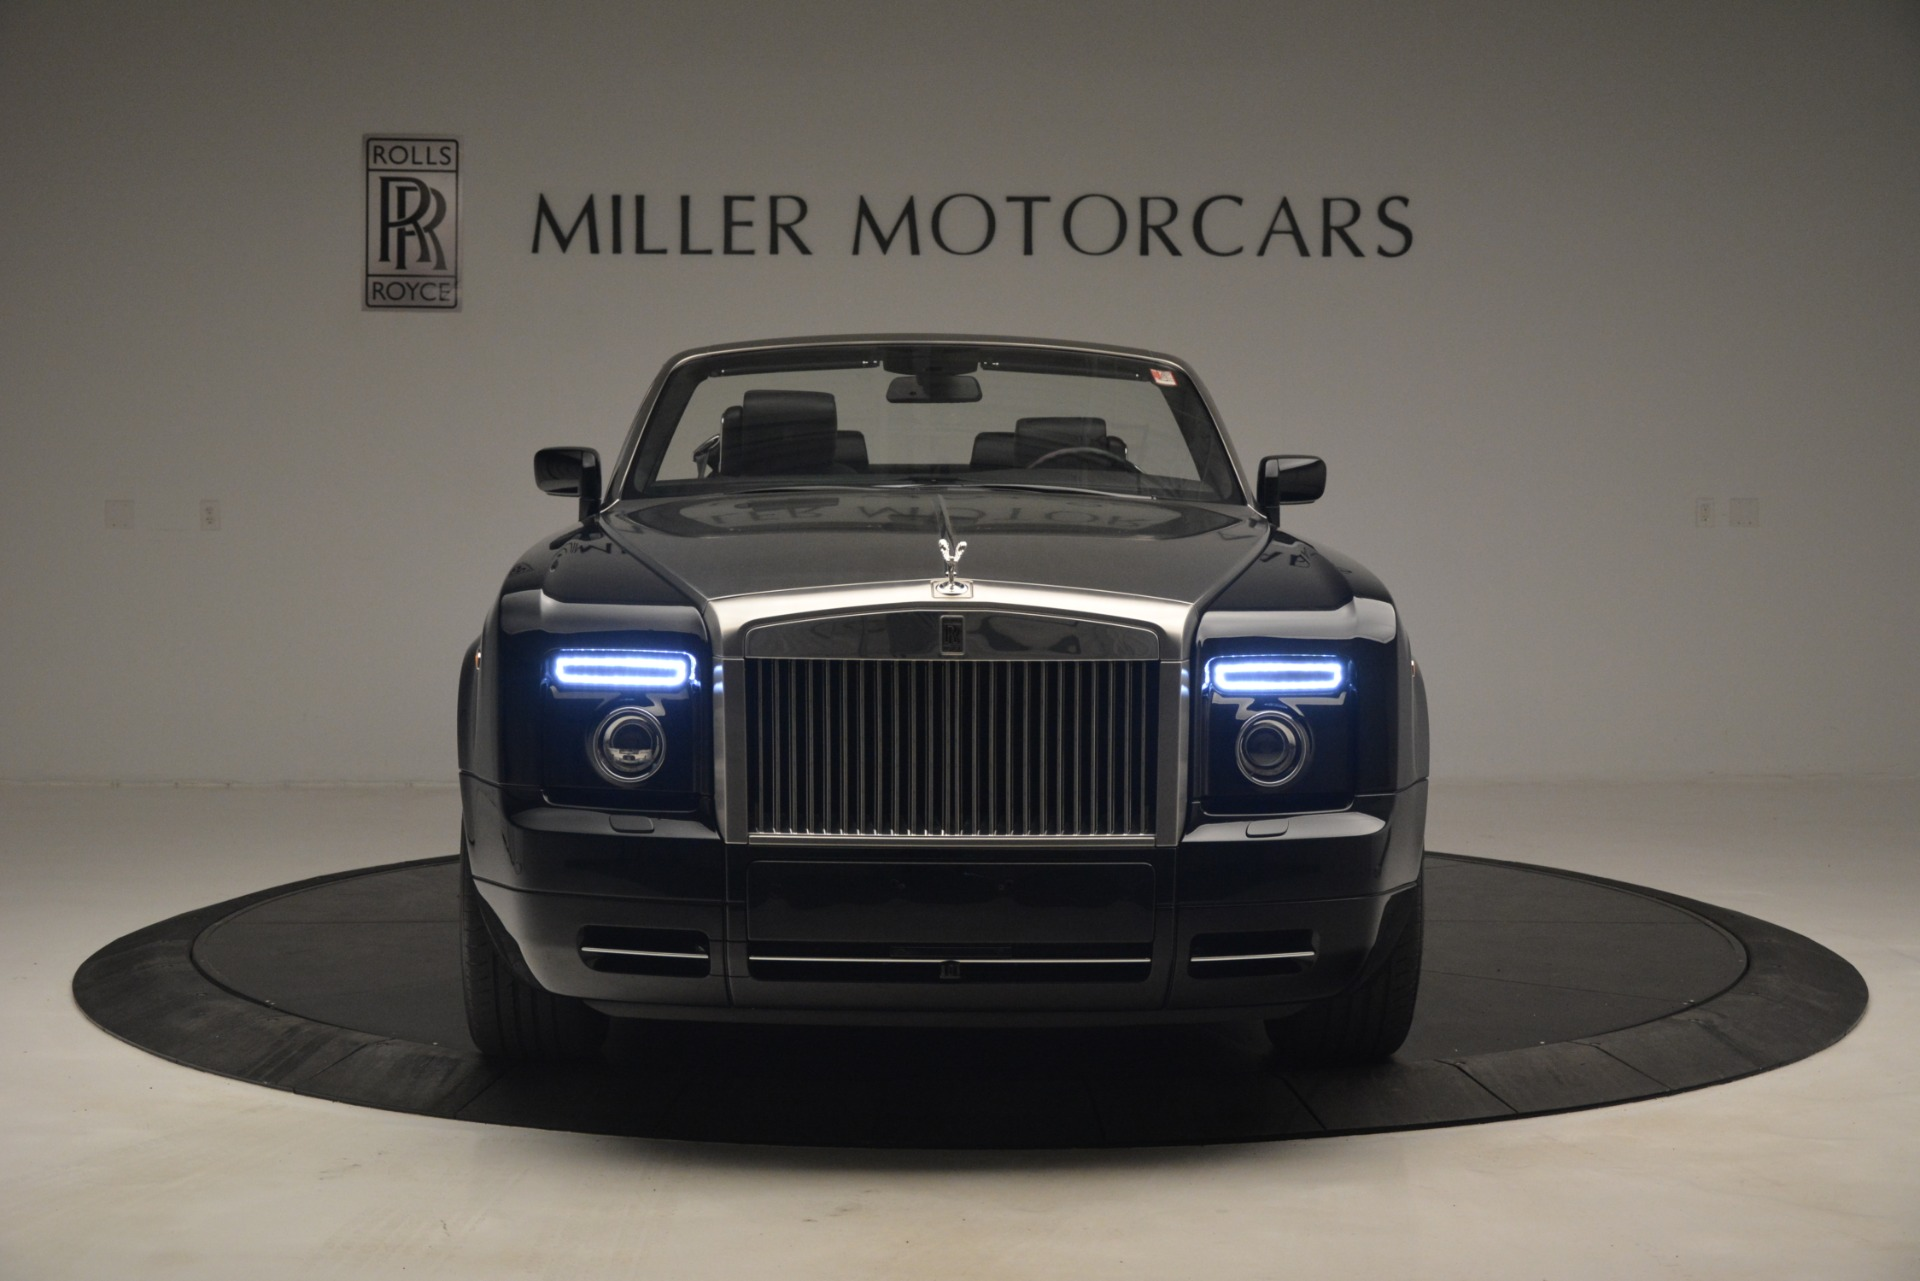 Used 2008 Rolls-Royce Phantom Drophead Coupe  For Sale In Greenwich, CT 3000_p8